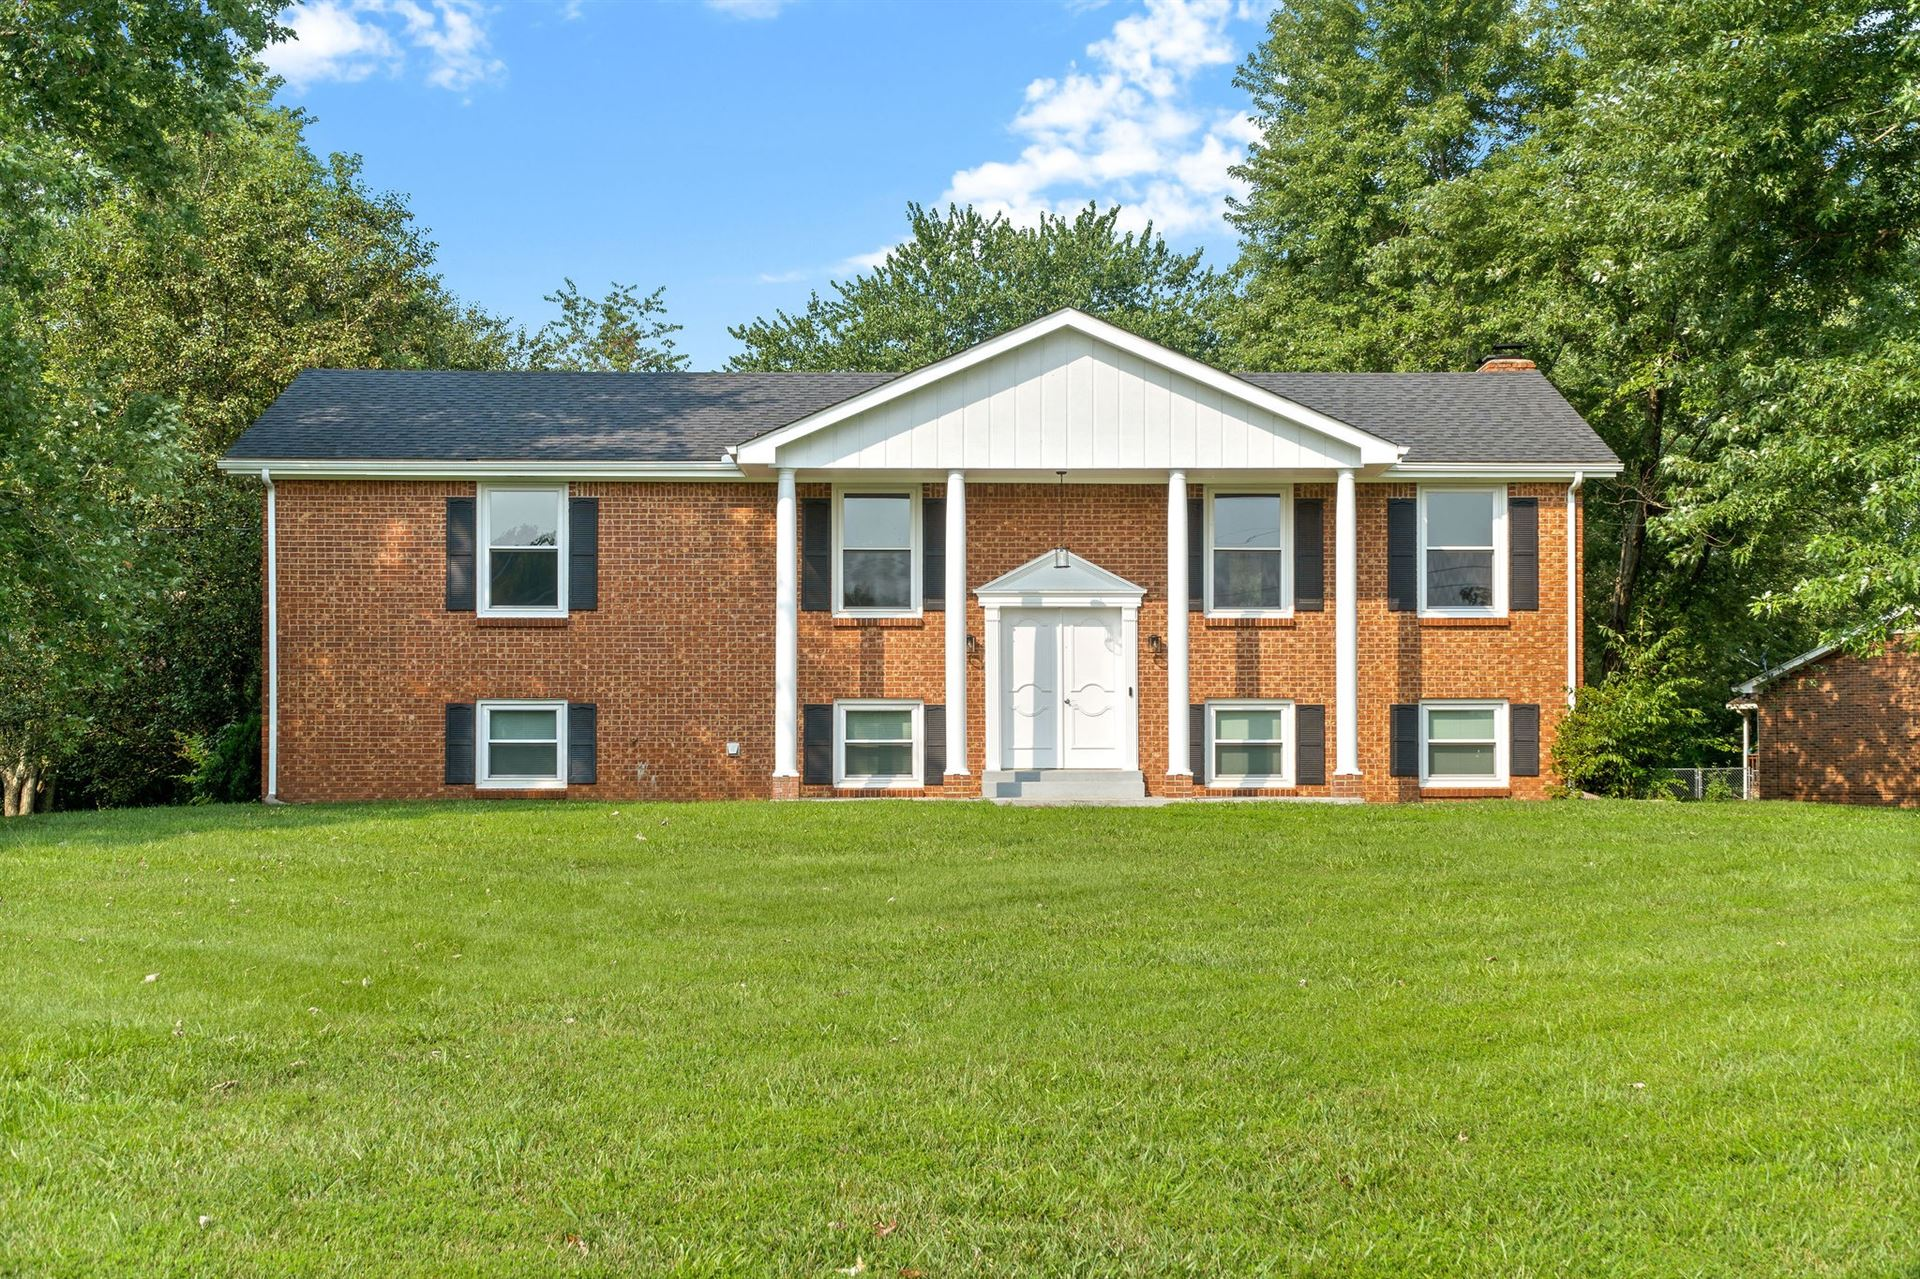 506 Countryside Dr, Clarksville, TN 37043 - MLS#: 2275962